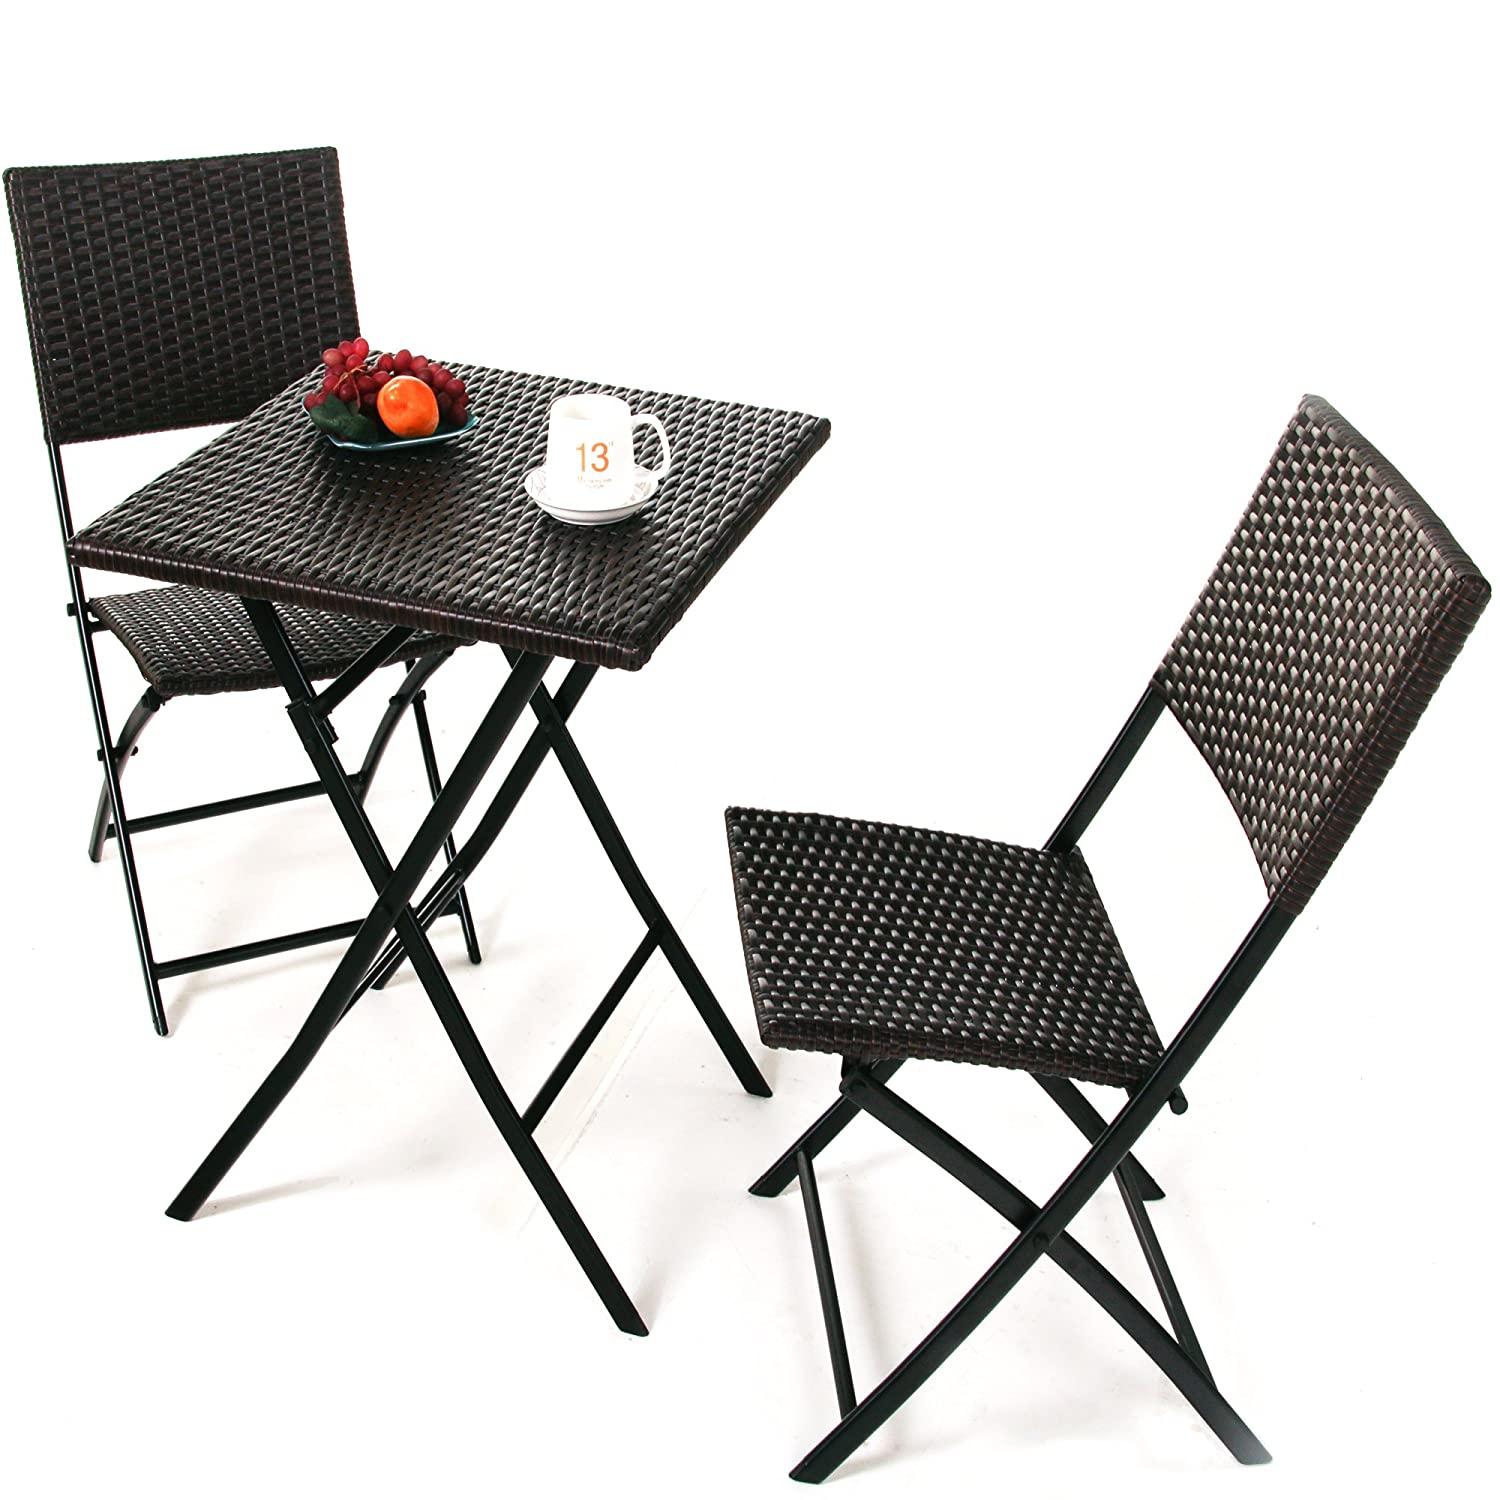 amazoncom grand patio parma rattan patio bistro set weather resistant outdoor furniture sets with rust proof steel frames 3 piece bistro set of foldable